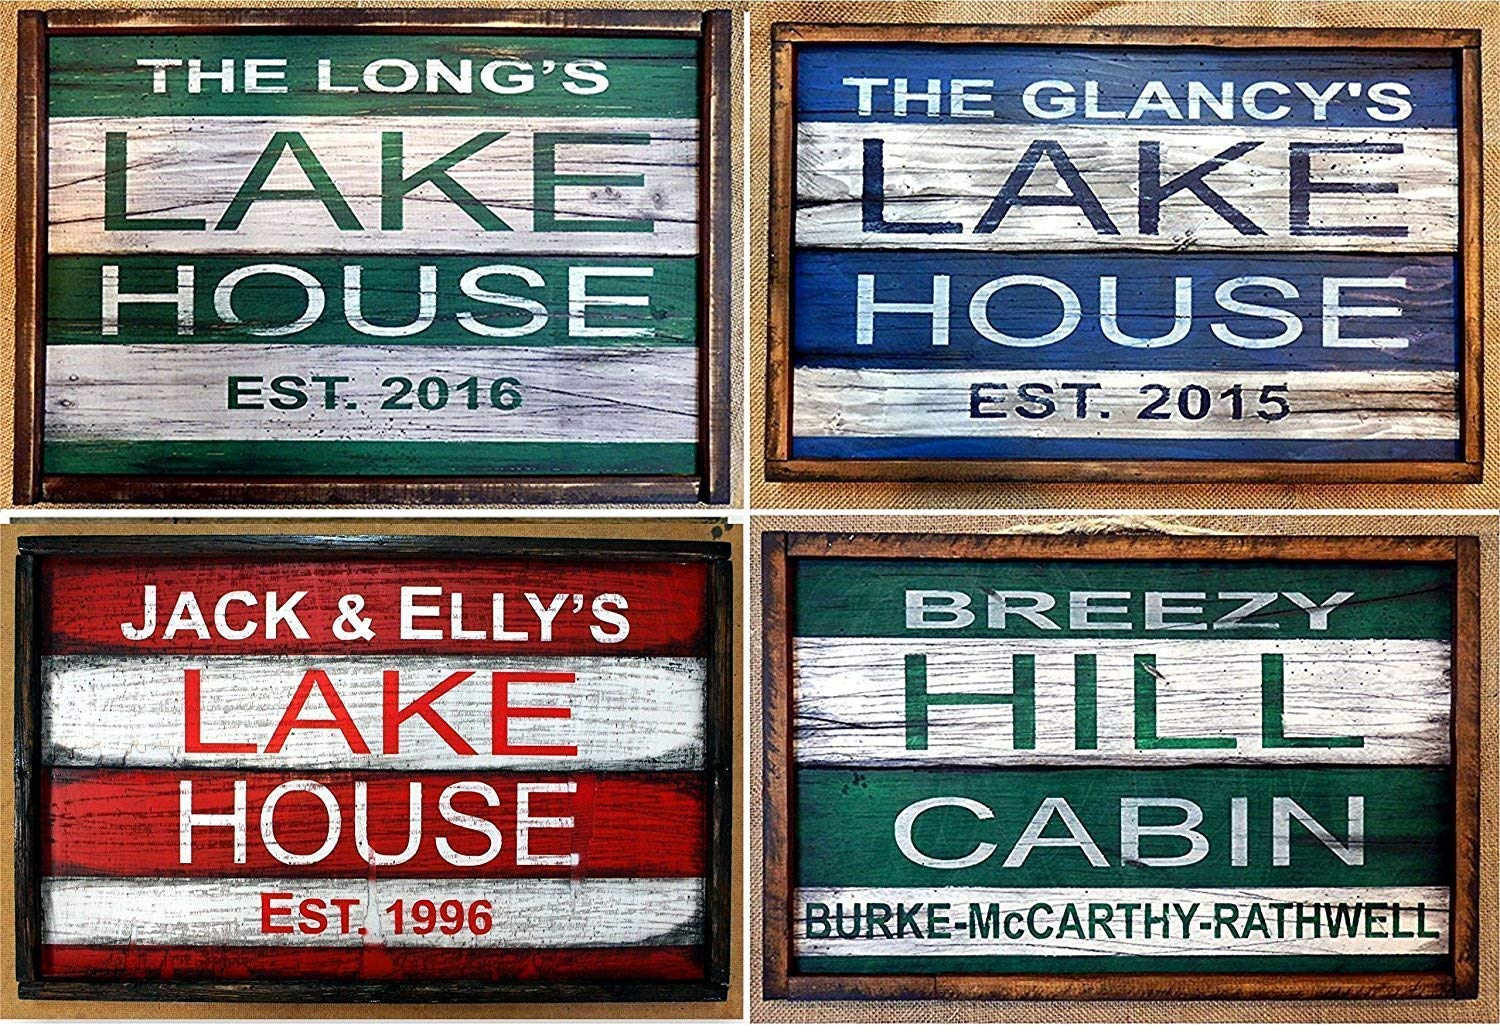 Personalized LAKE HOUSE decor | Cabin decor | Rustic wooden signs | Personalized gifts | Handcrafted, Size: 20'x13' Size: 20x13